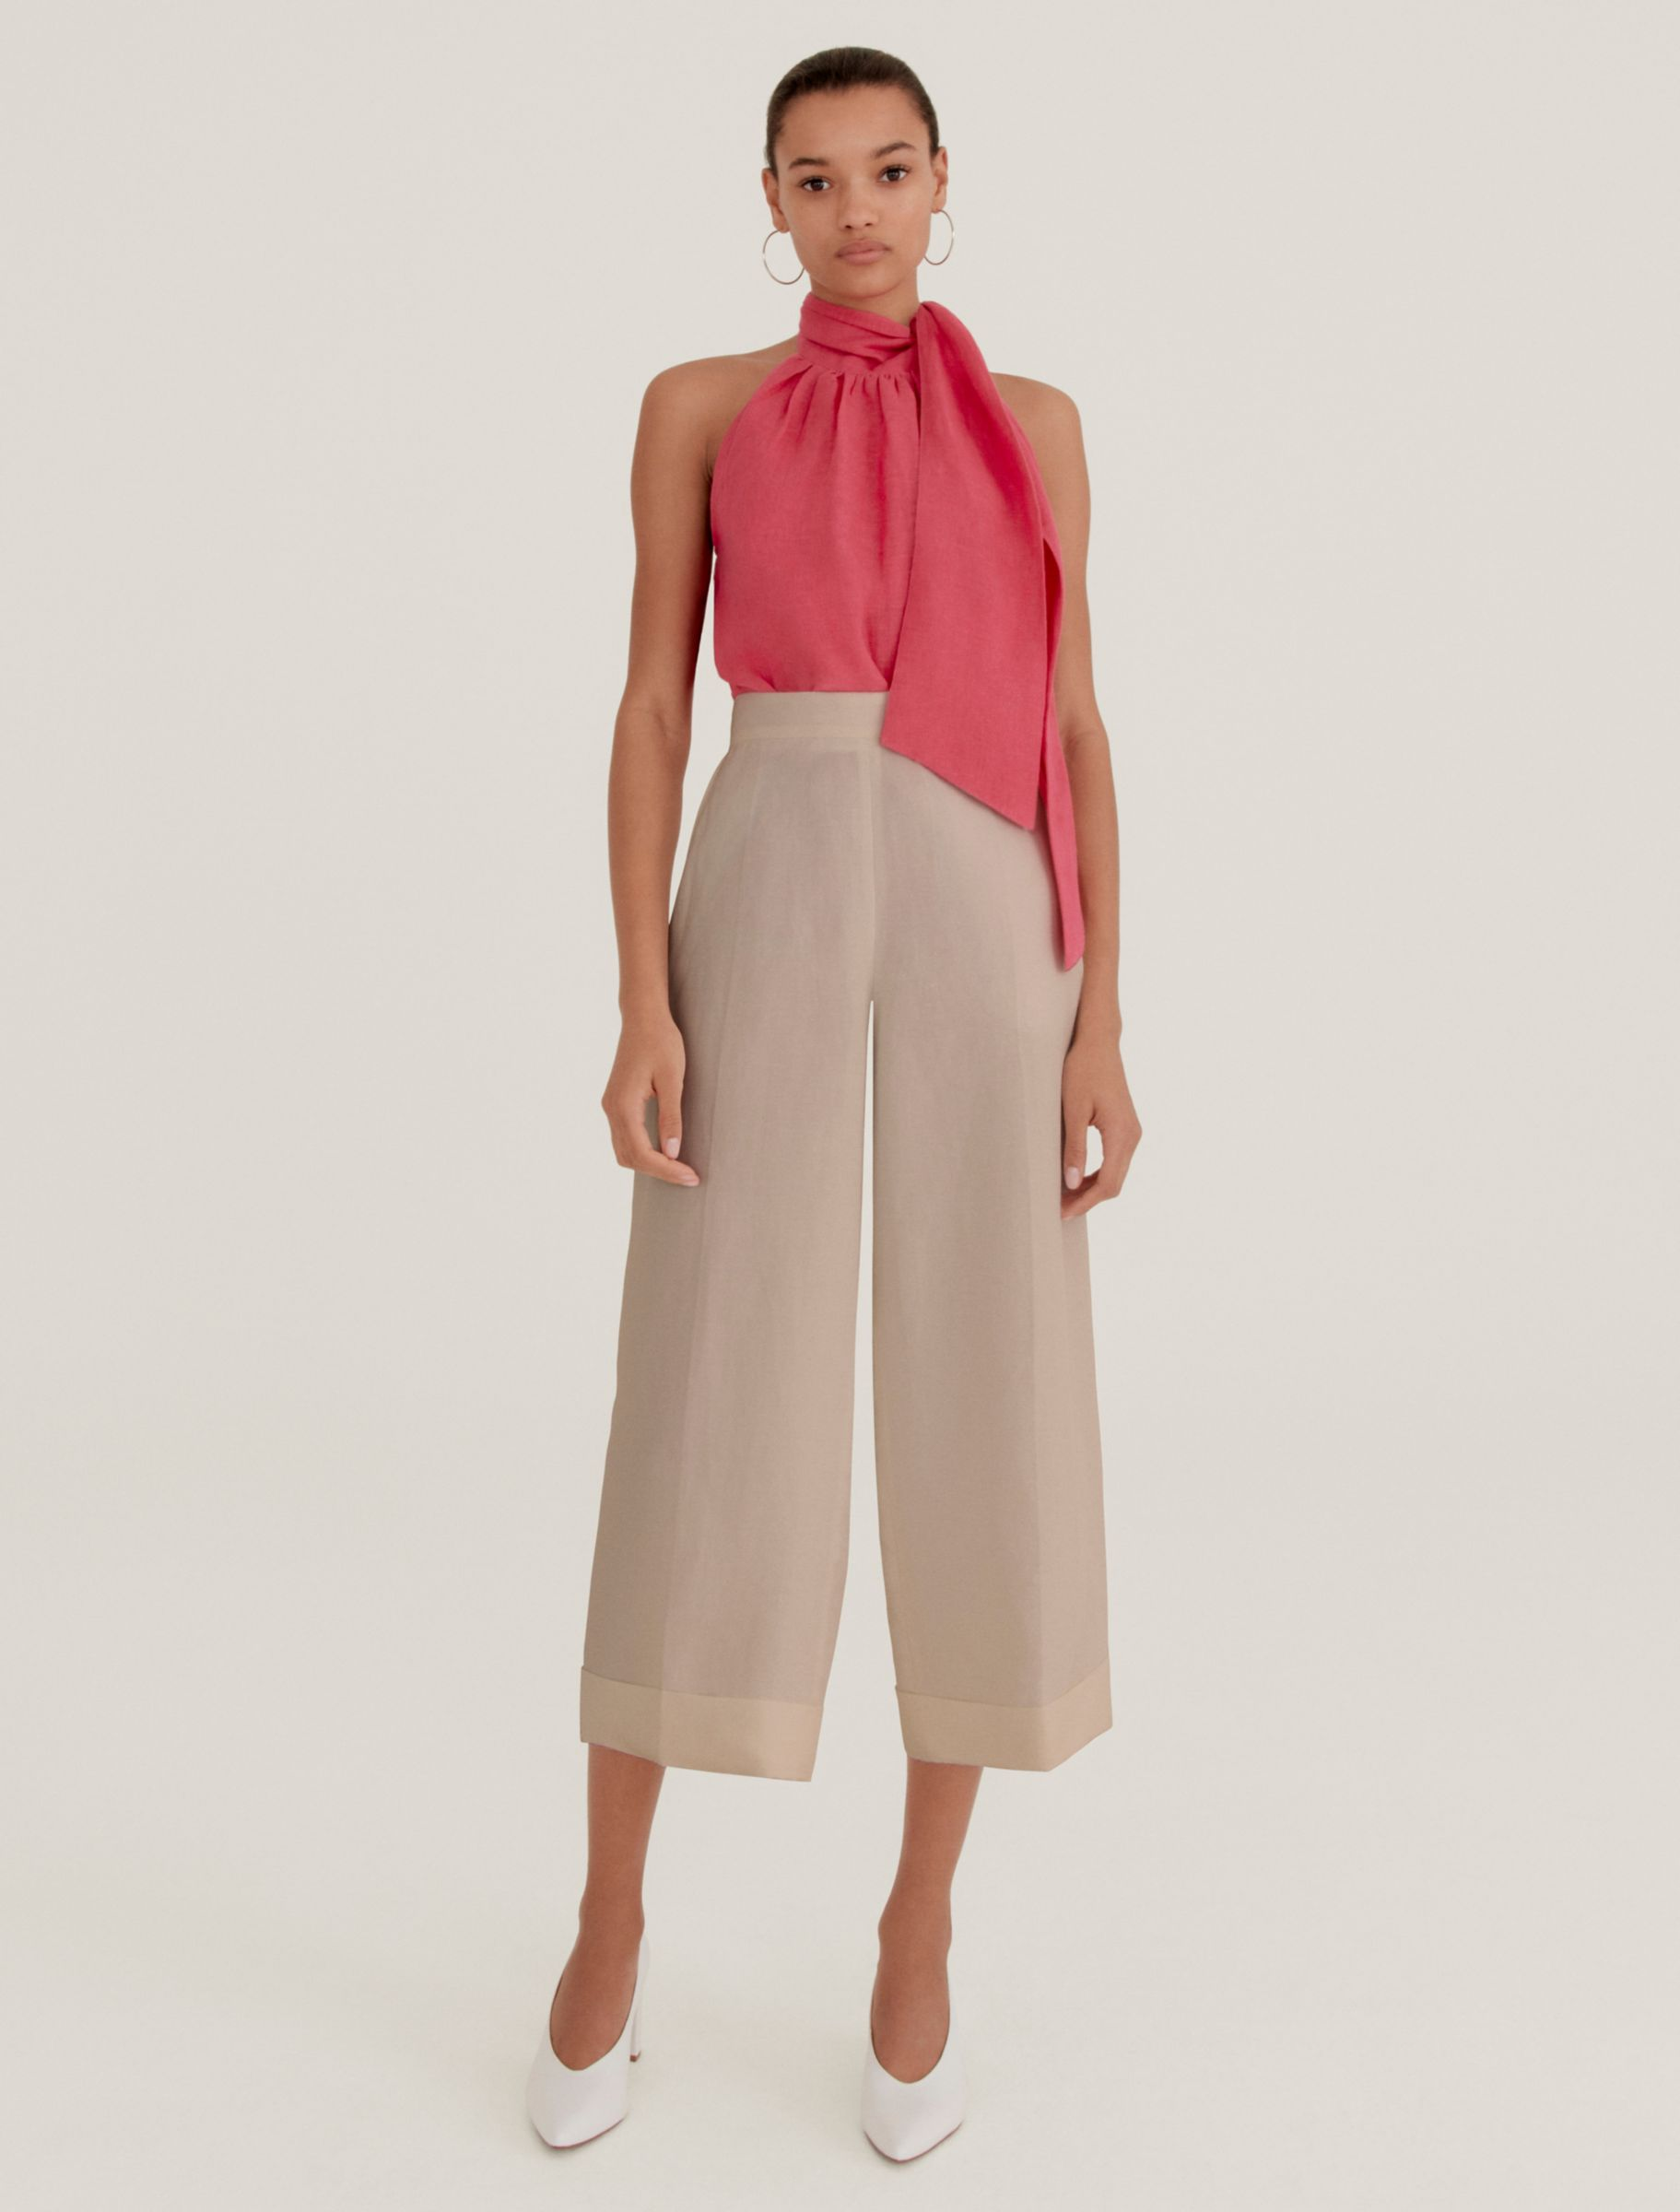 Woman in pink blouse and neutral trousers